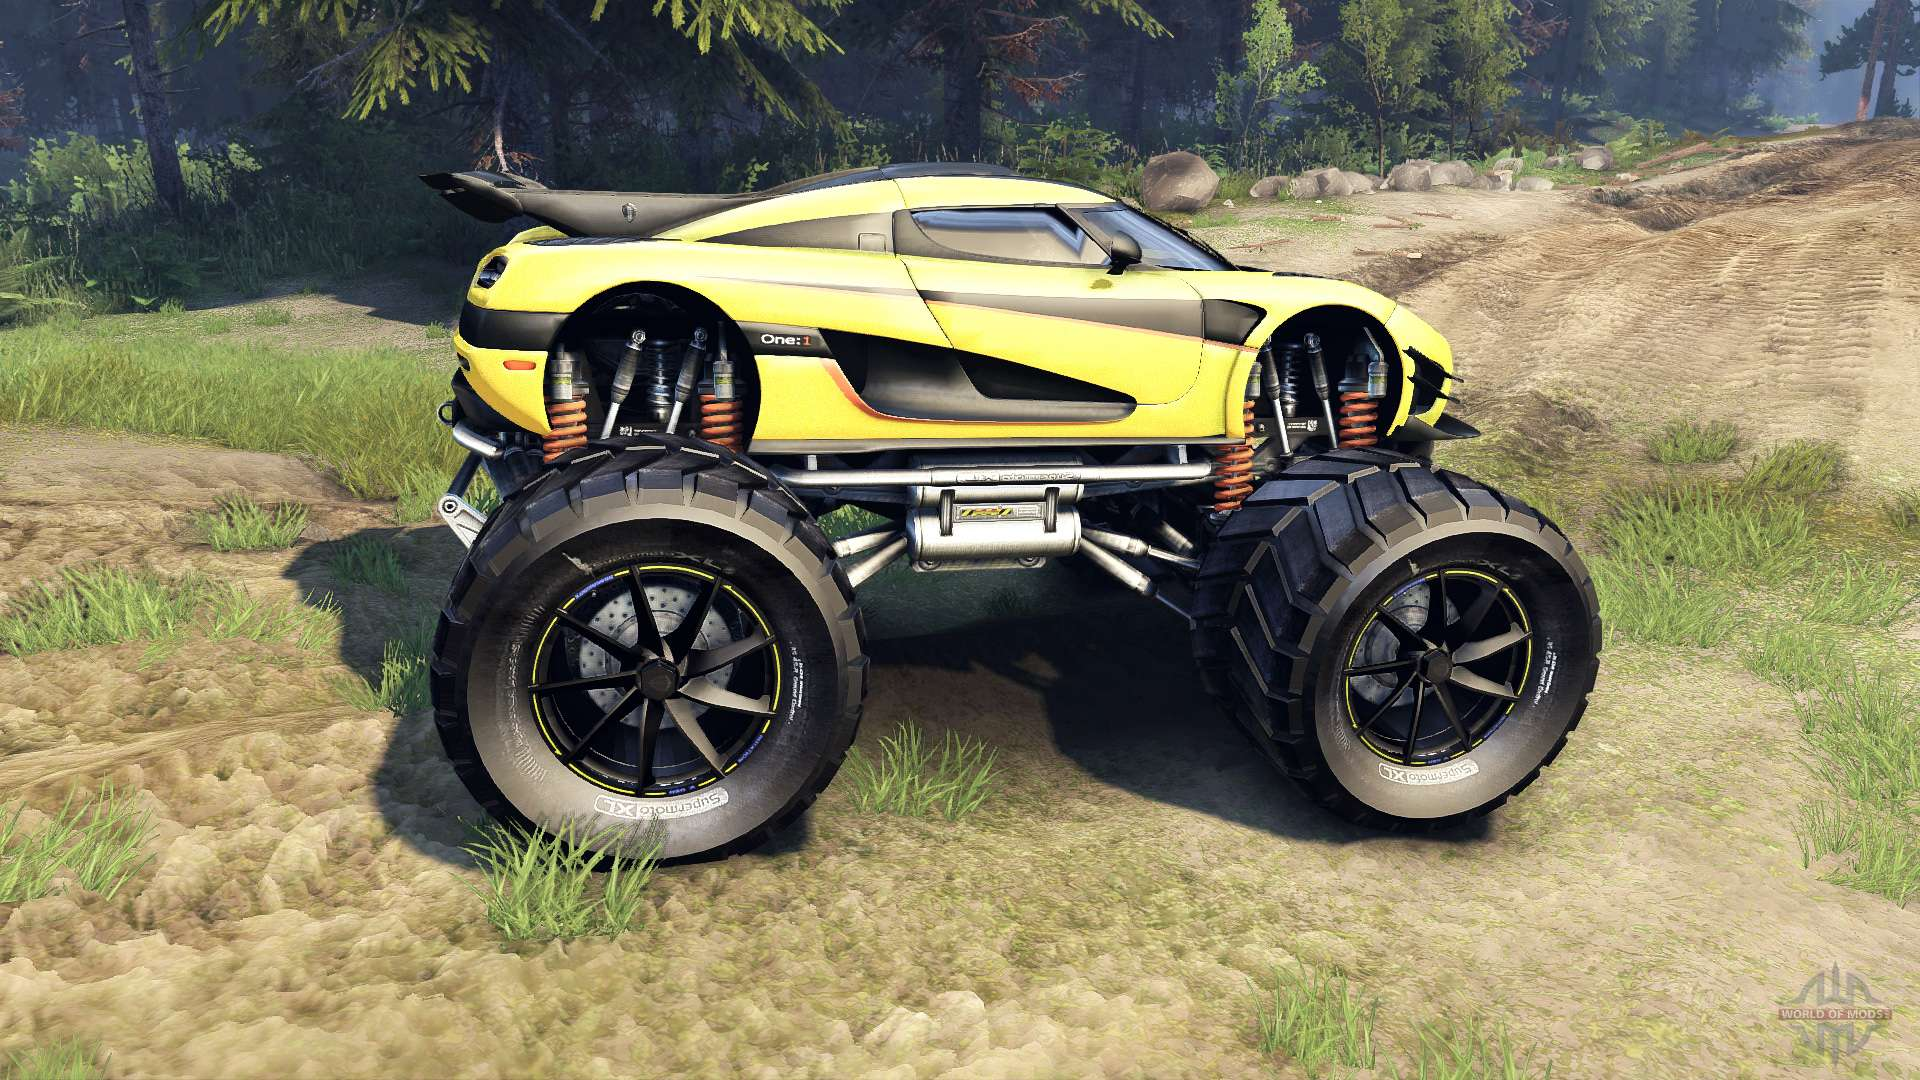 1 8 monster truck with 3931 Koenigsegg One1 Monster on 60 Absolutely Stunning Truck Wallpapers In Hd as well Lego Monster Truck Set 60180 as well The Bikini Contest In The Party Zone A Charming 3 besides Alfa Romeo Brera Stock 81a561b8 7652 4b97 98b3 0e8a50398424 furthermore 6735 Toyota Tundra Off Road.